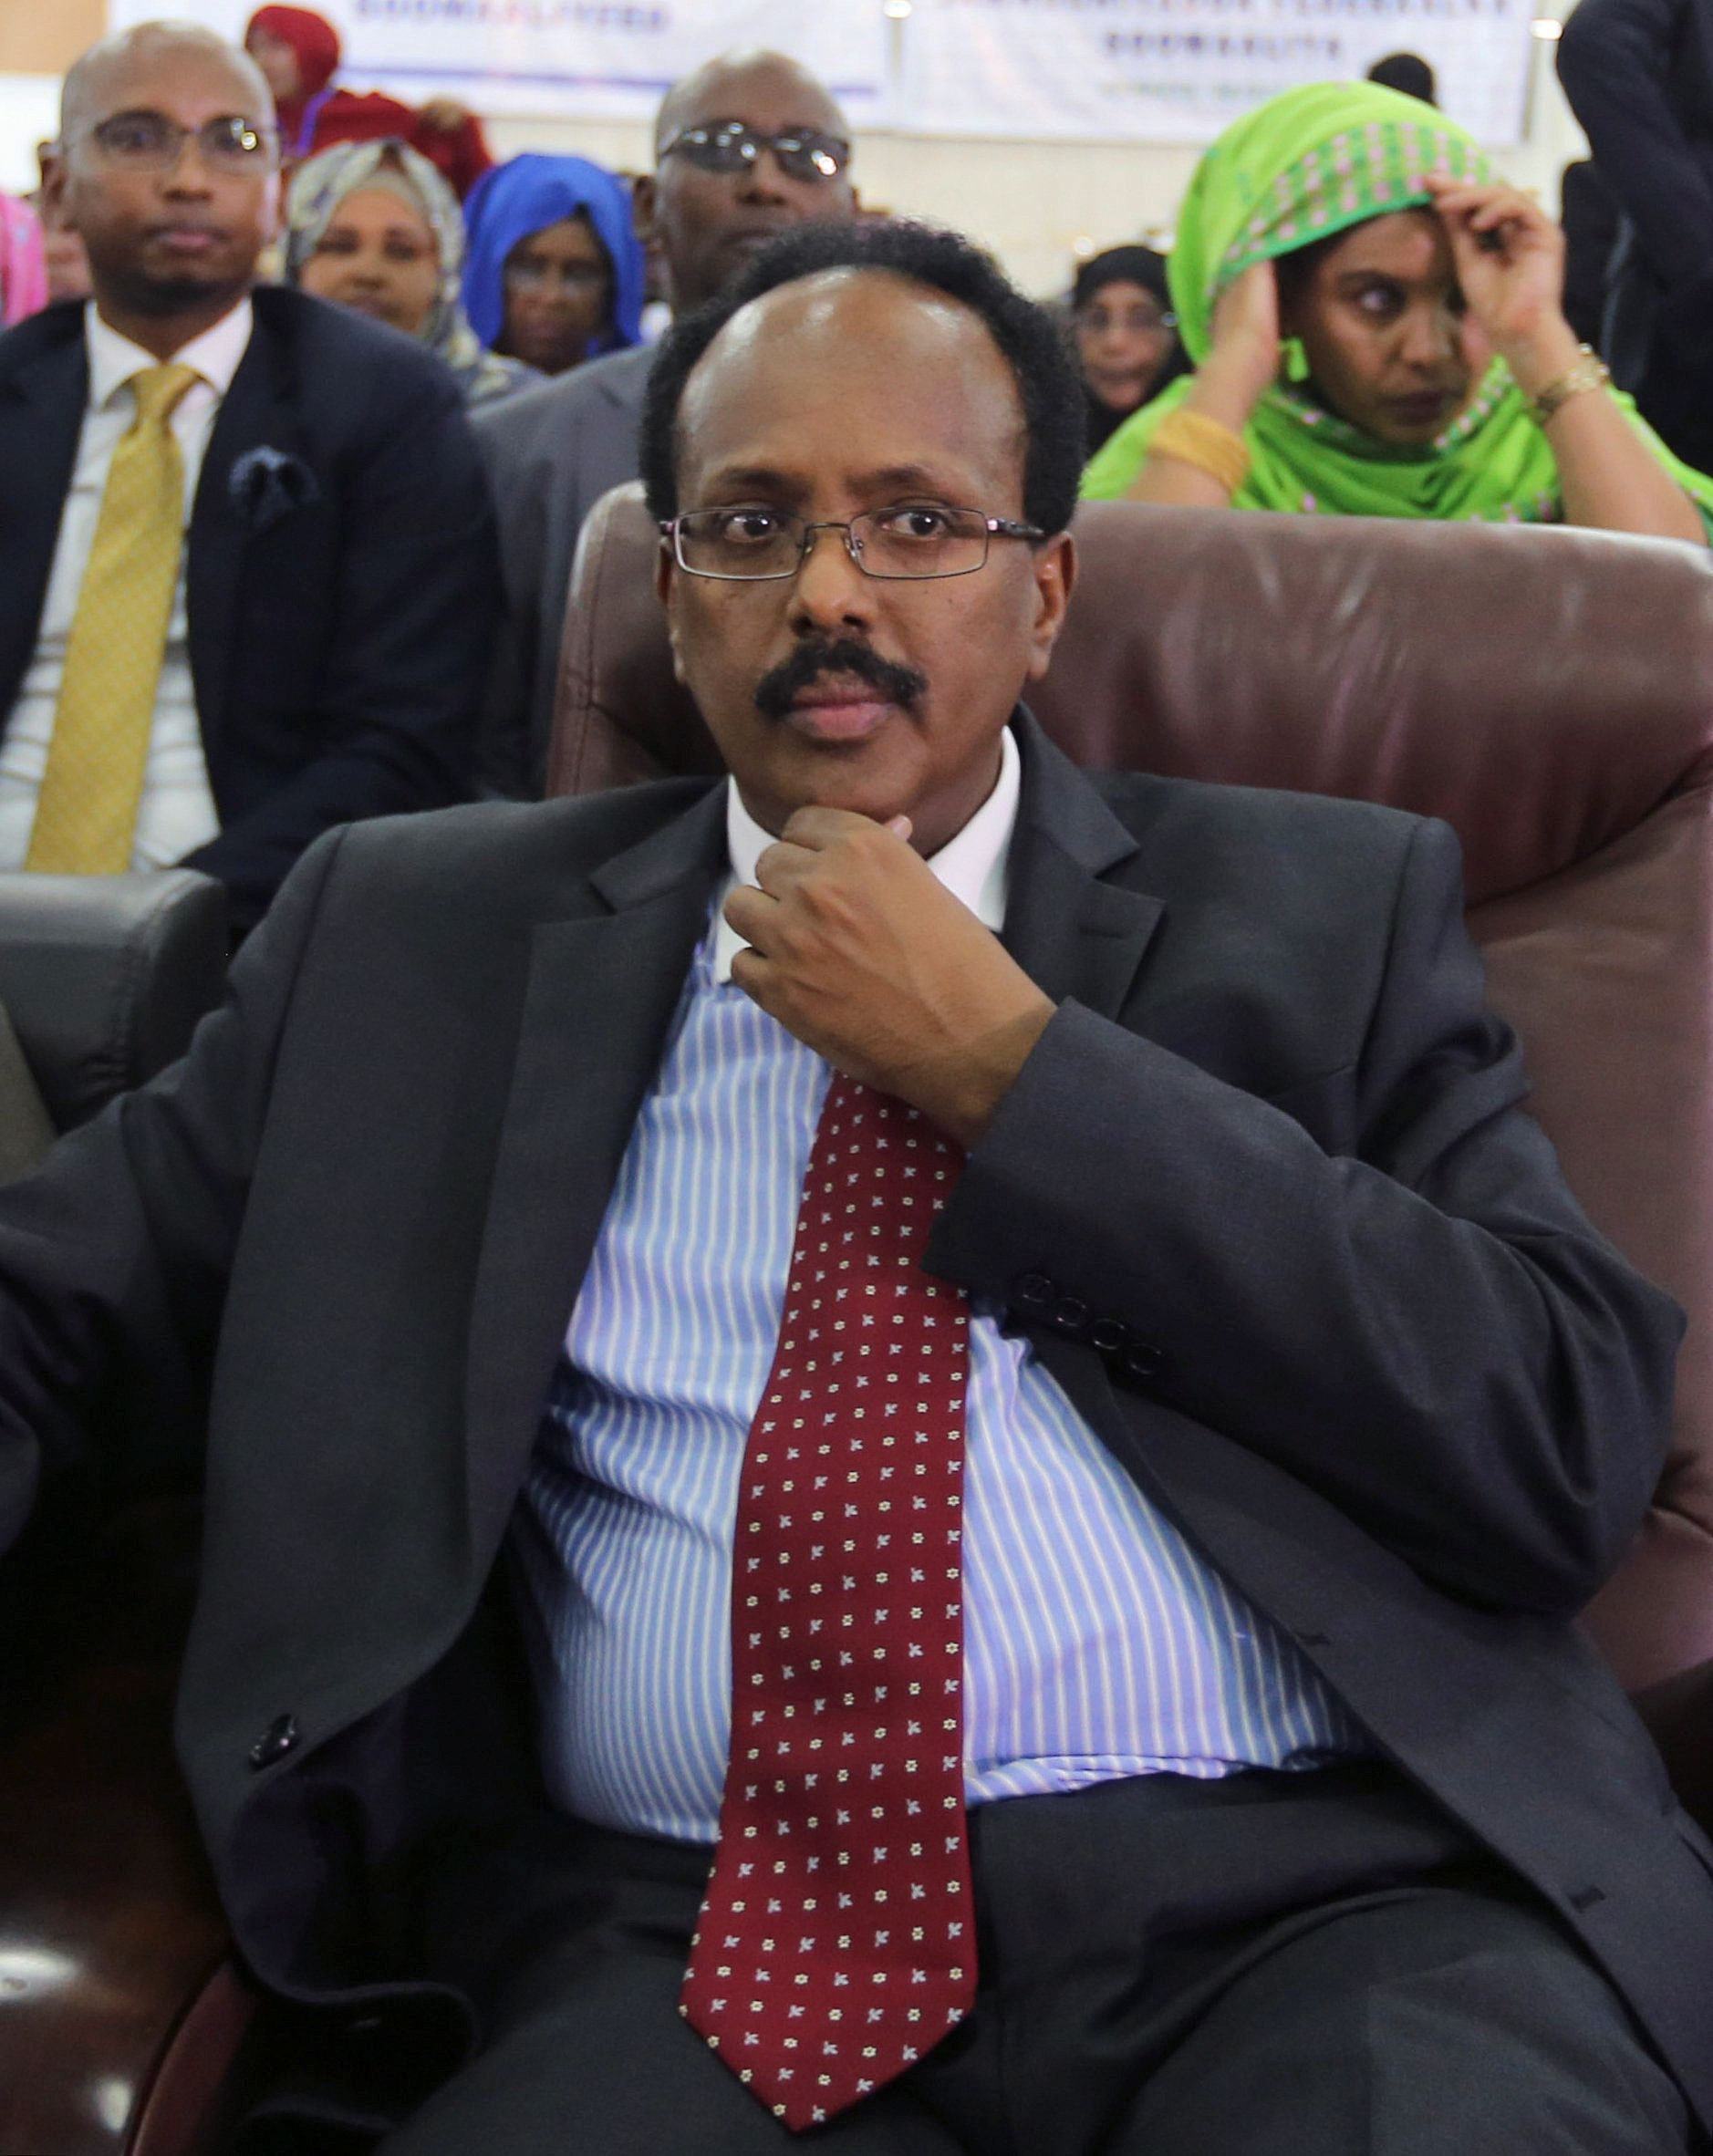 Somalia Set to Impeach President